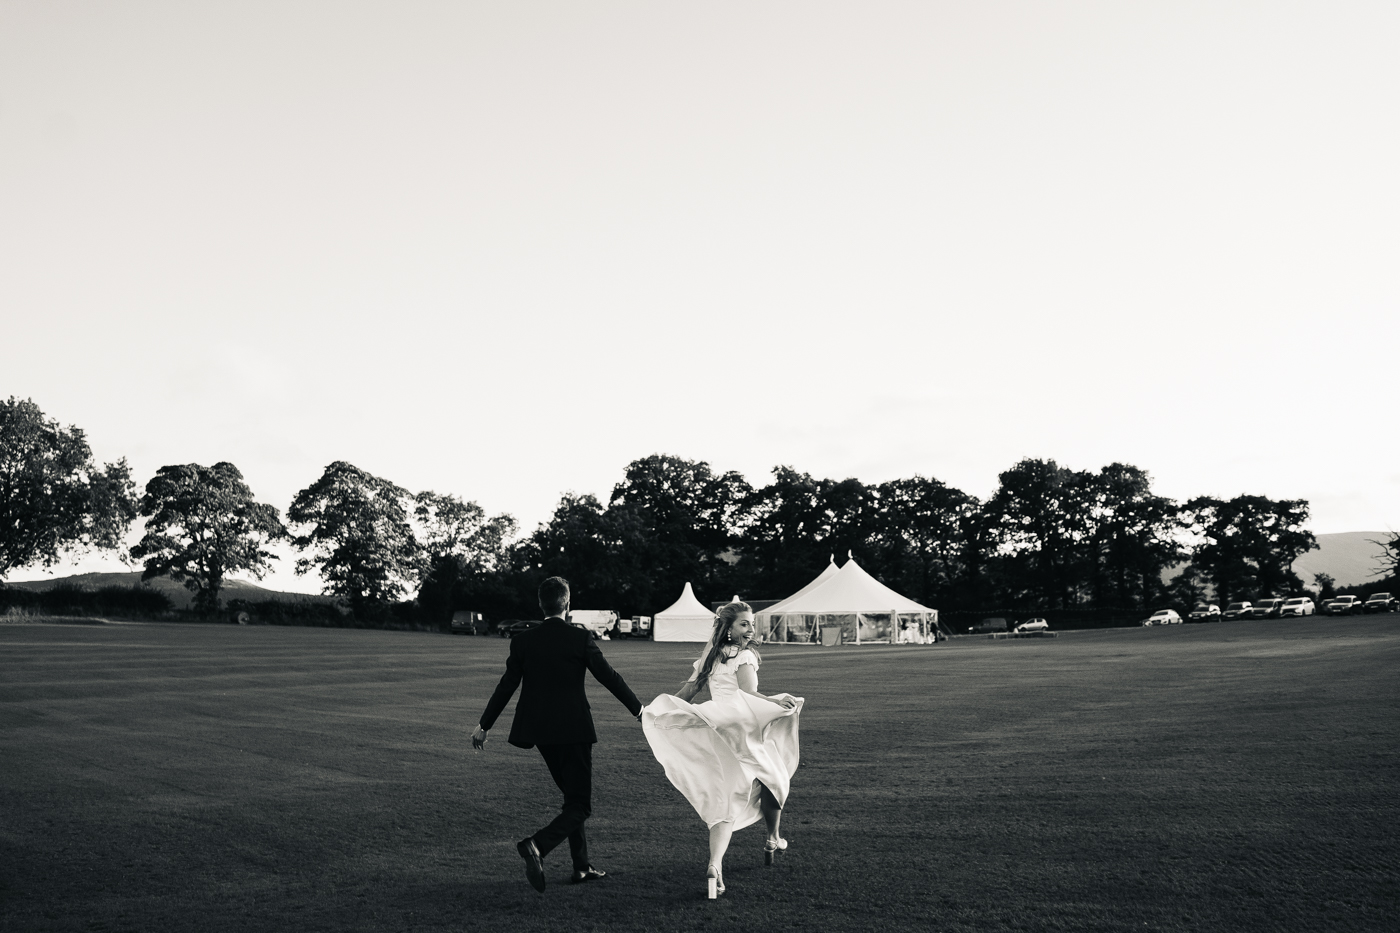 north-yorkshire-marquee-wedding-photographer-teesside-north-east-wedding-photography-0086.jpg